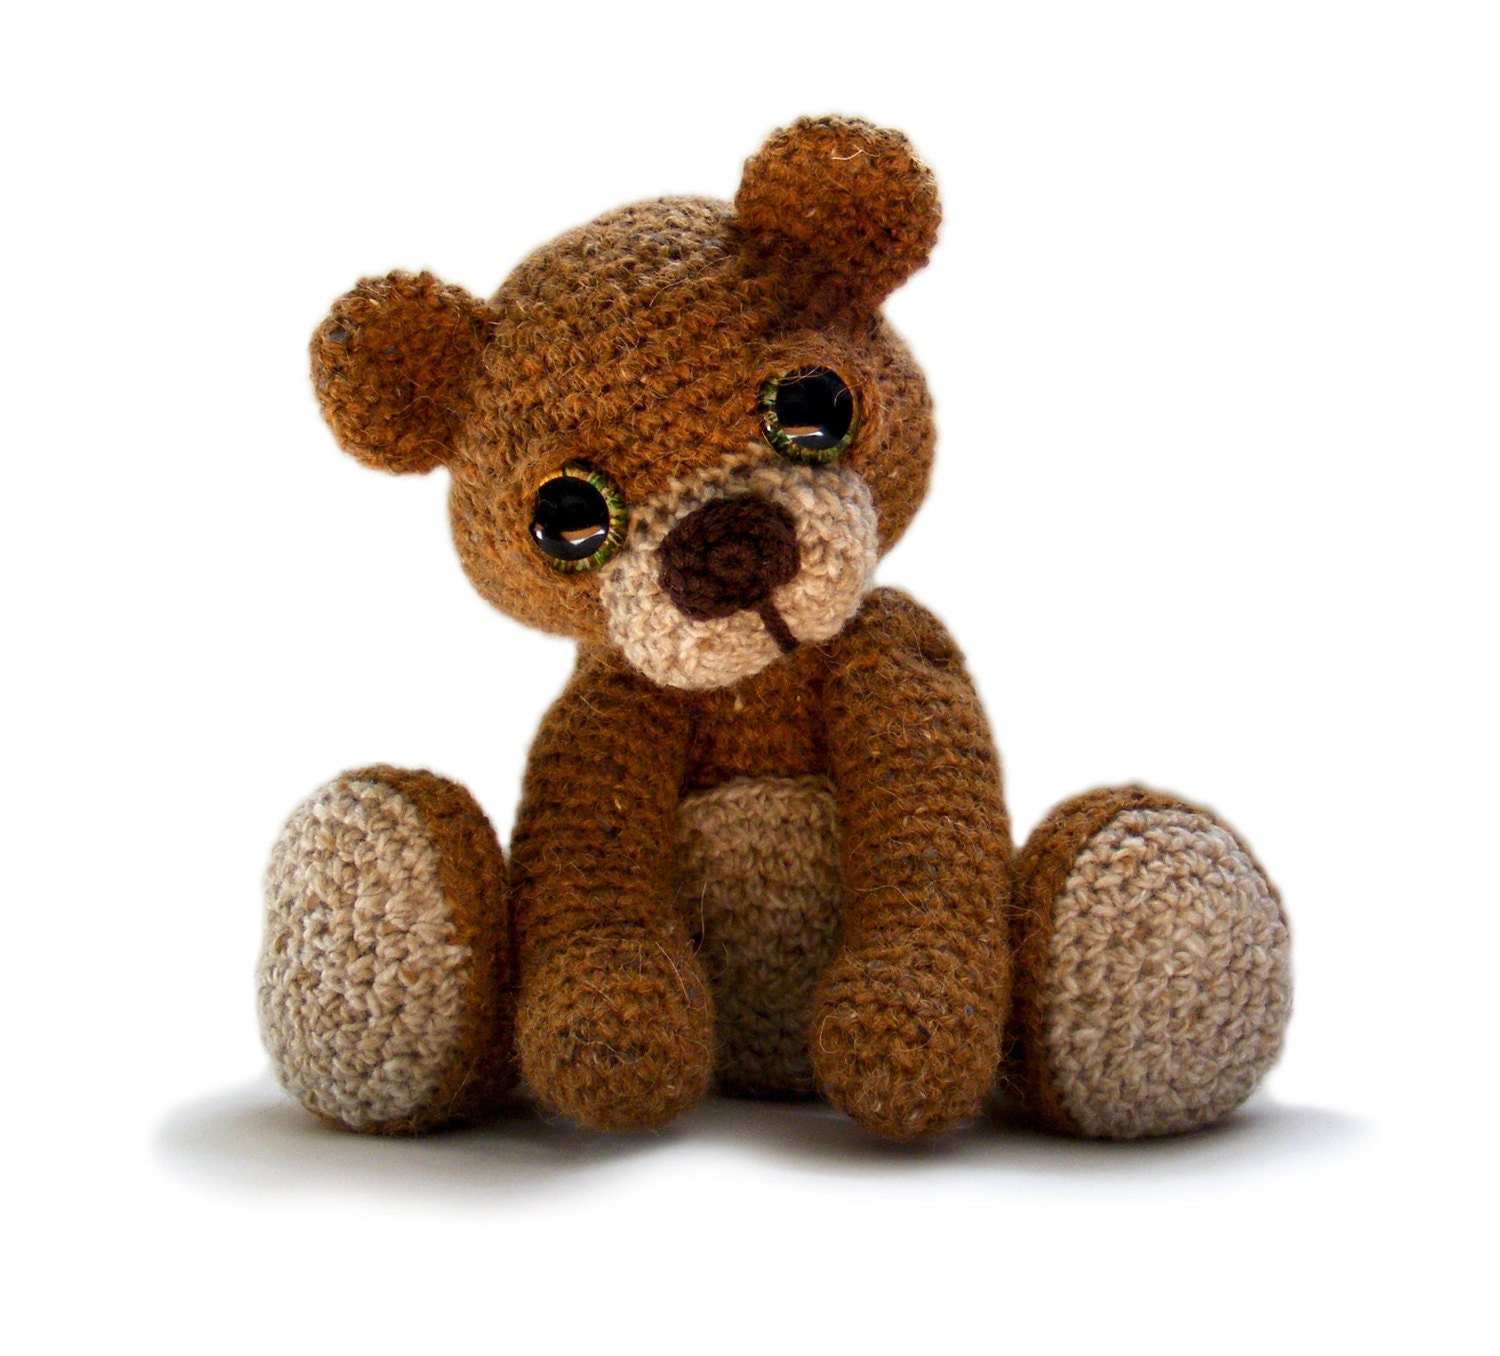 Teddy Bear Knitting Patterns Free Download : Teddy Bear Amigurumi Crochet Pattern PDF instant Download